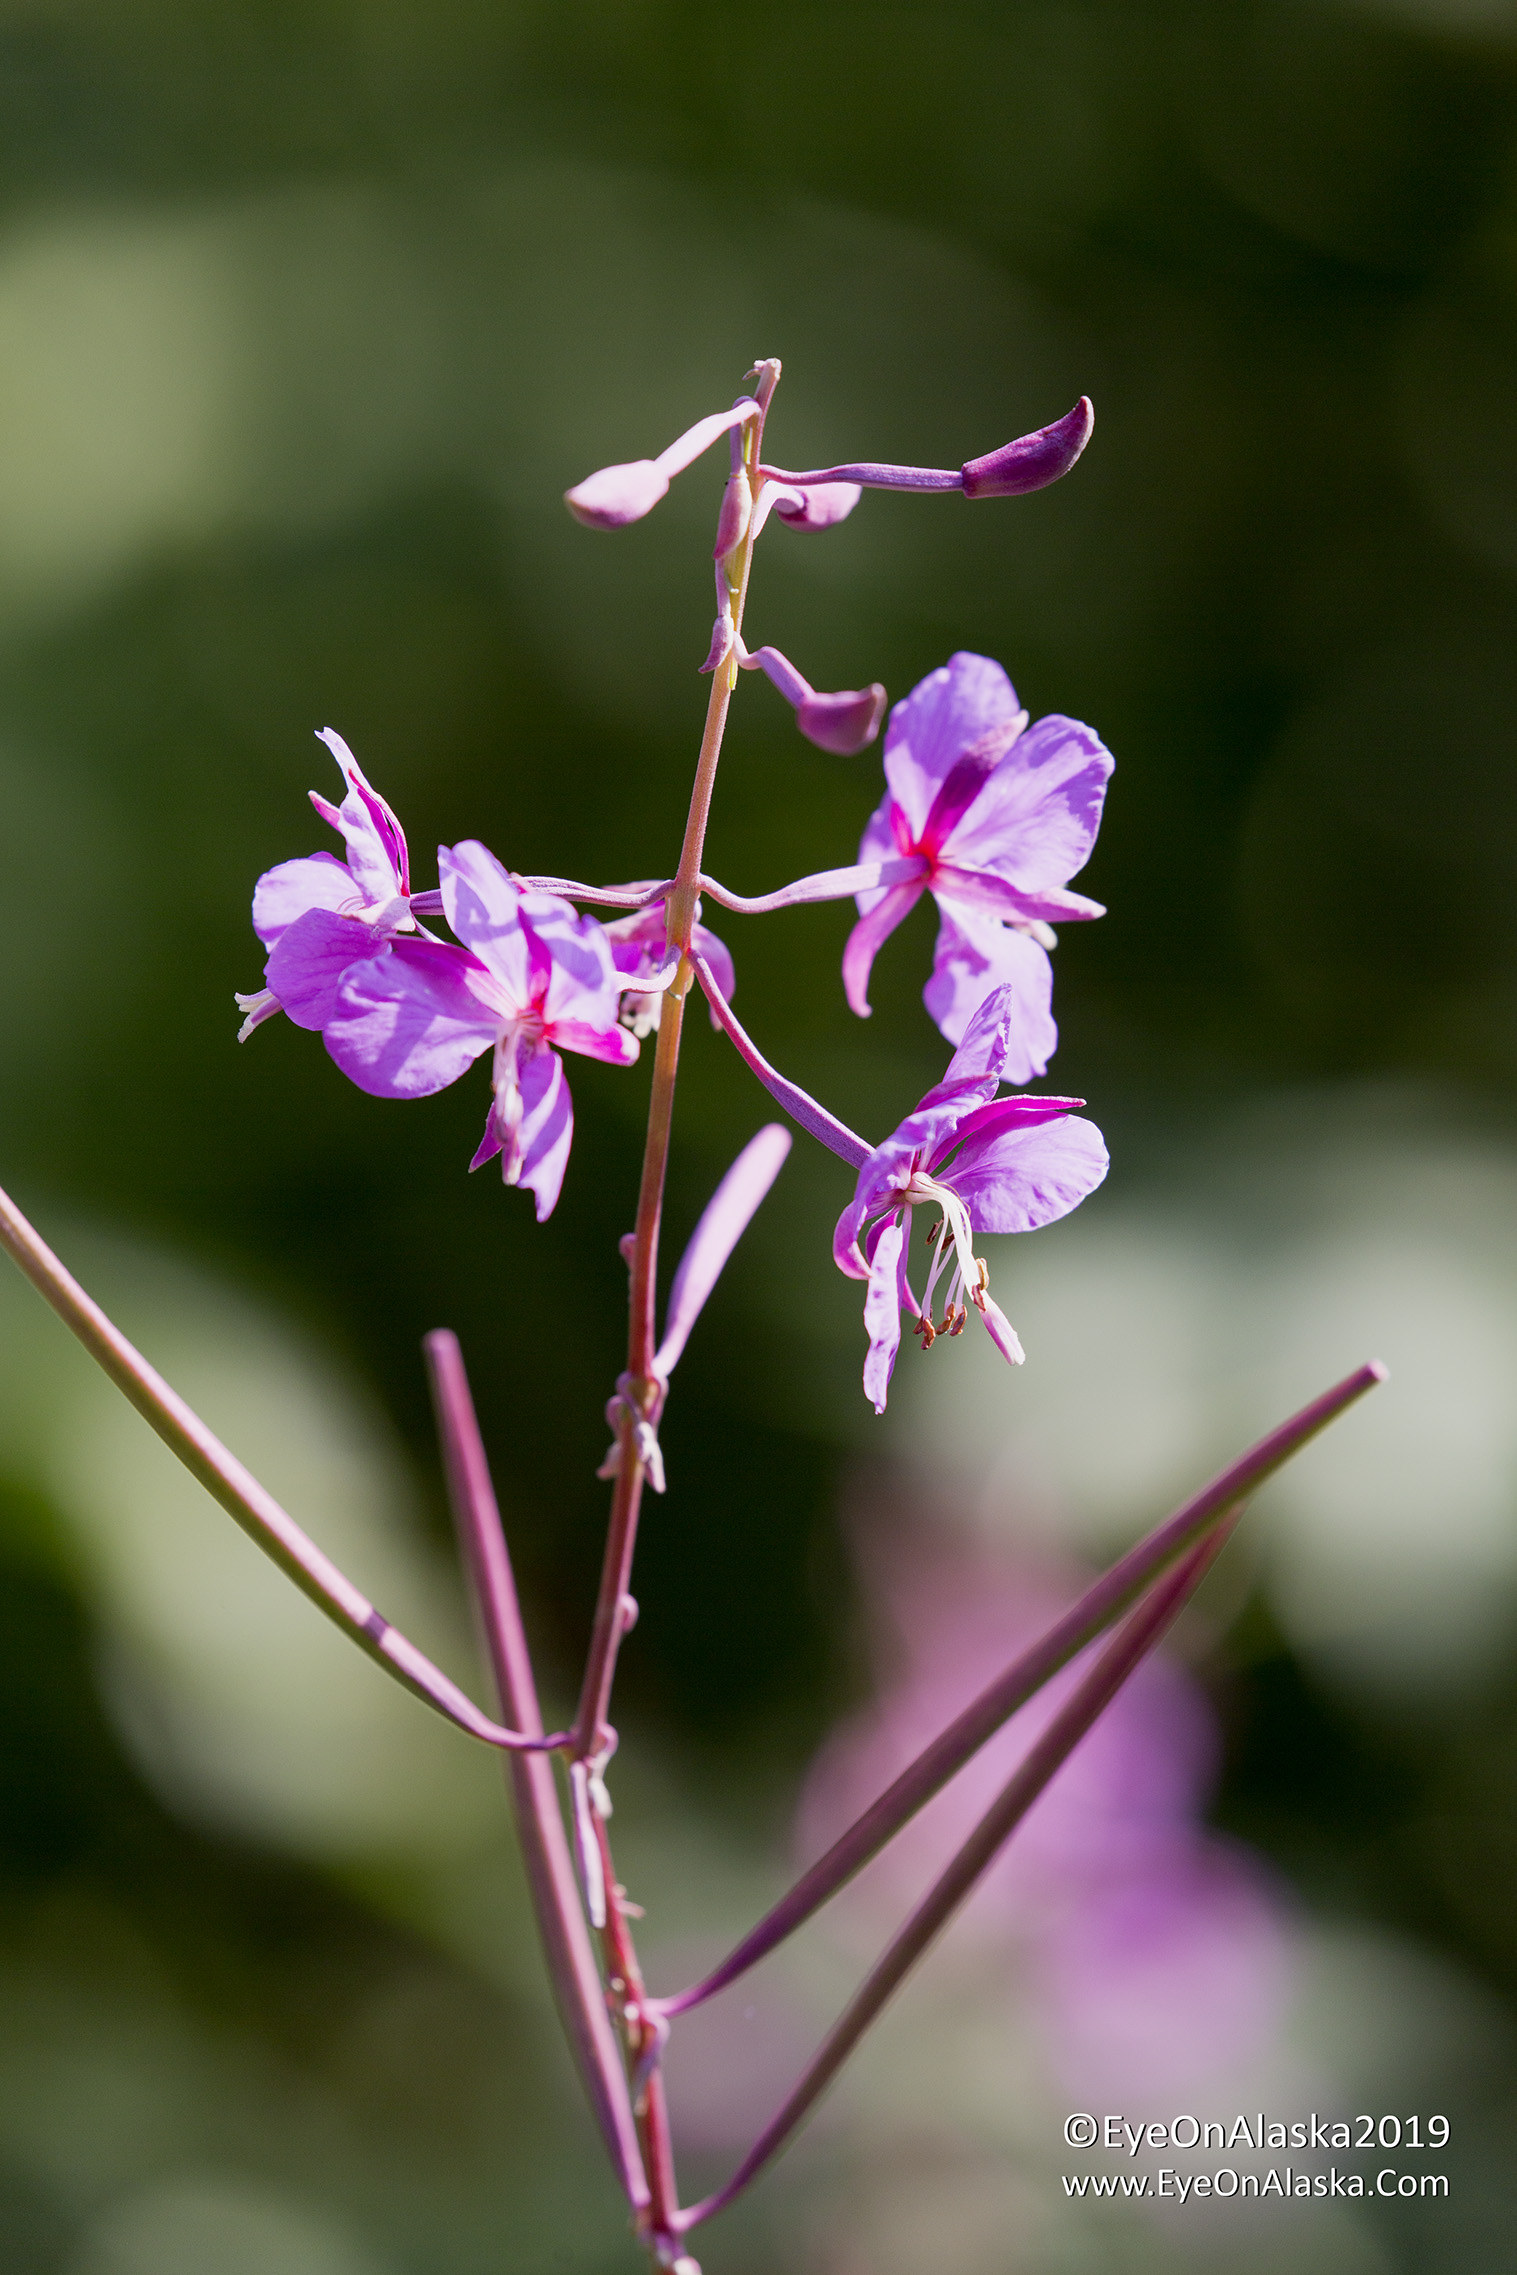 No!  Winter is coming.  Most of the fireweed in Portage Valley has already gone to seed.  The survivors are flowering just at the very tops.   Fireweed blooms from bottom to top, and the old Alaska Native legends say it's six weeks to winter when it tops out.